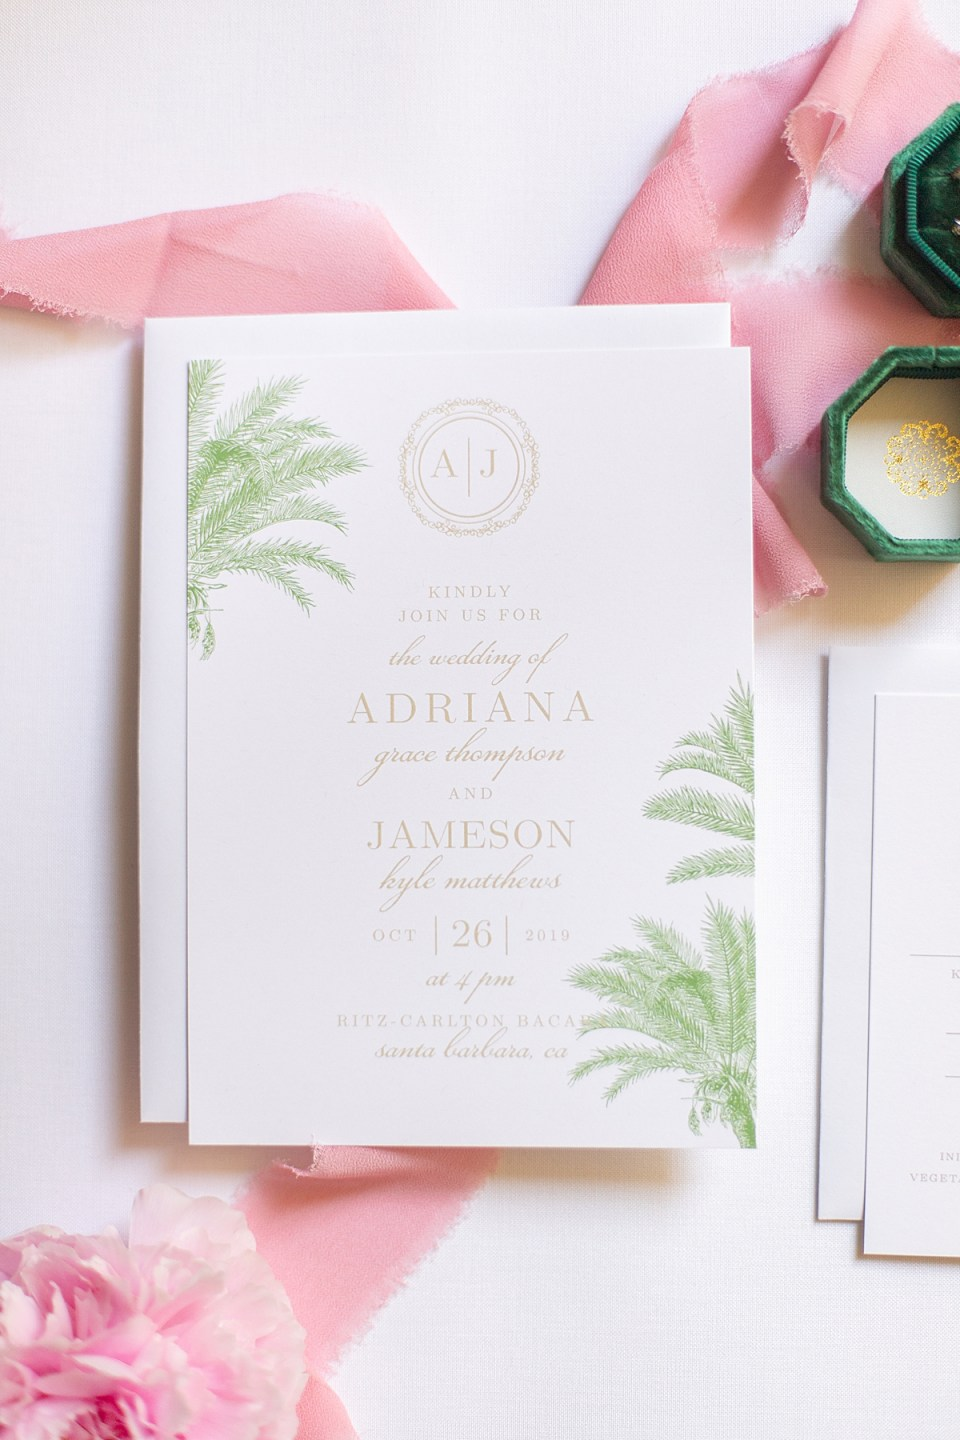 The couple's palm tree bridal shower brunch invitations